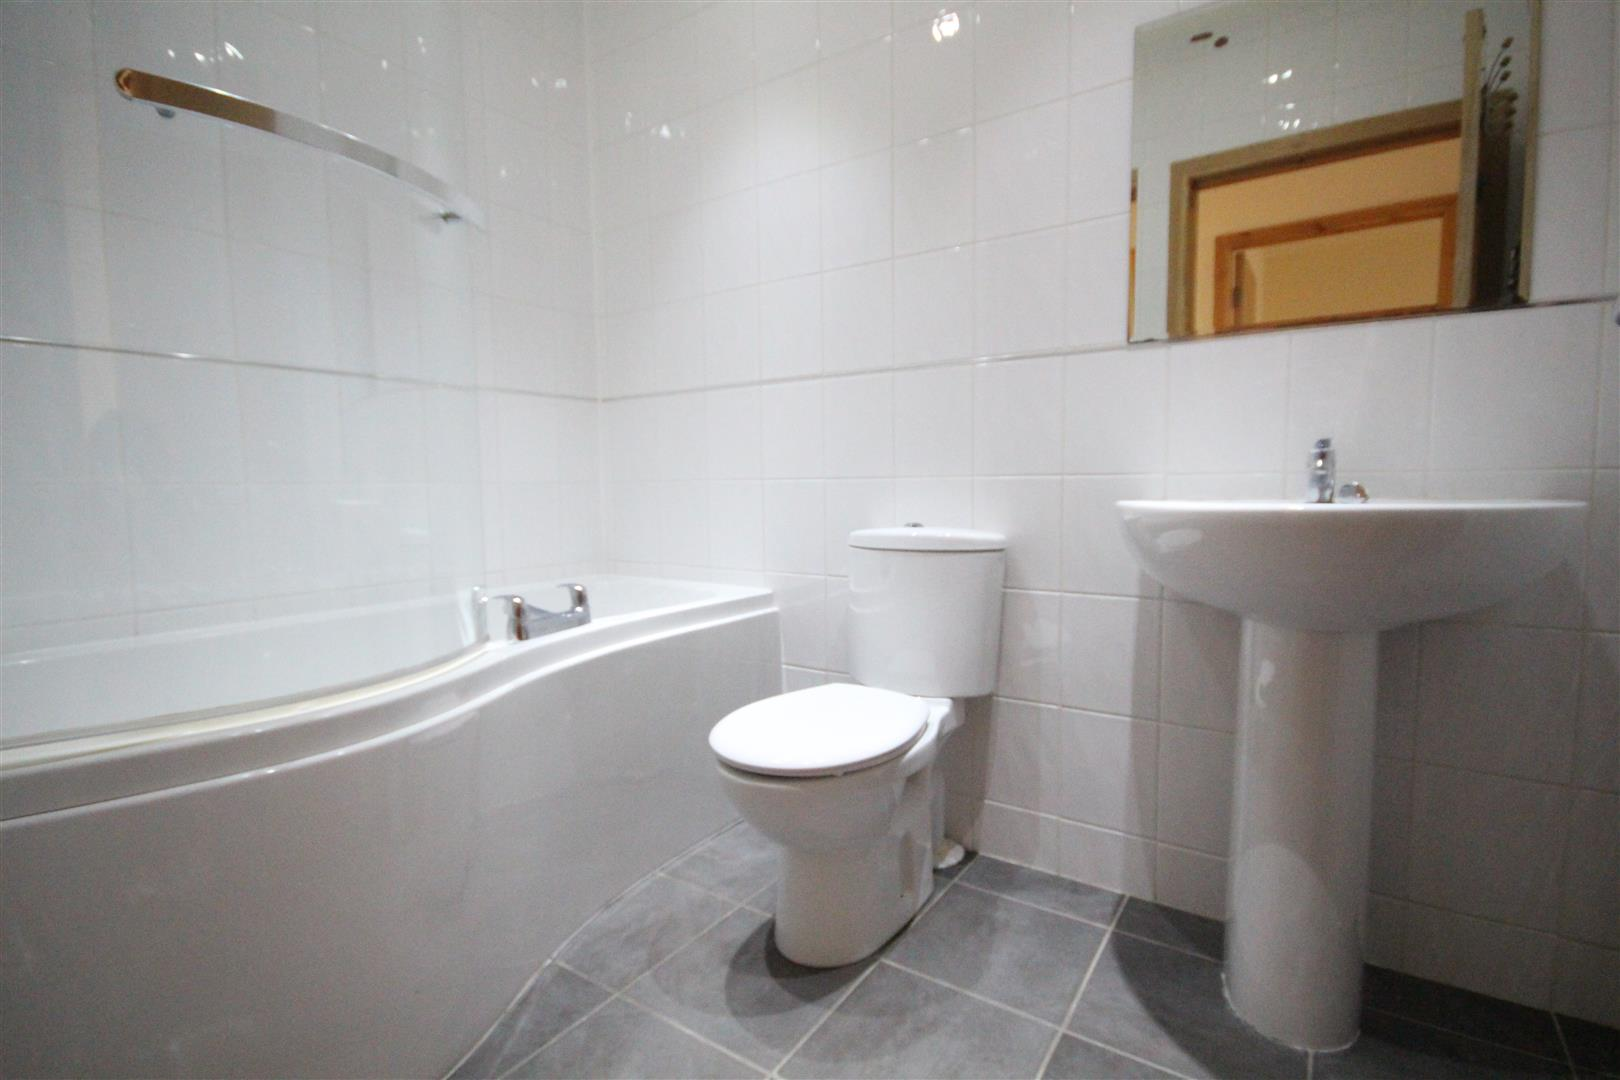 2 bedroom bungalow For Sale in Colne - IMG_0828.JPG